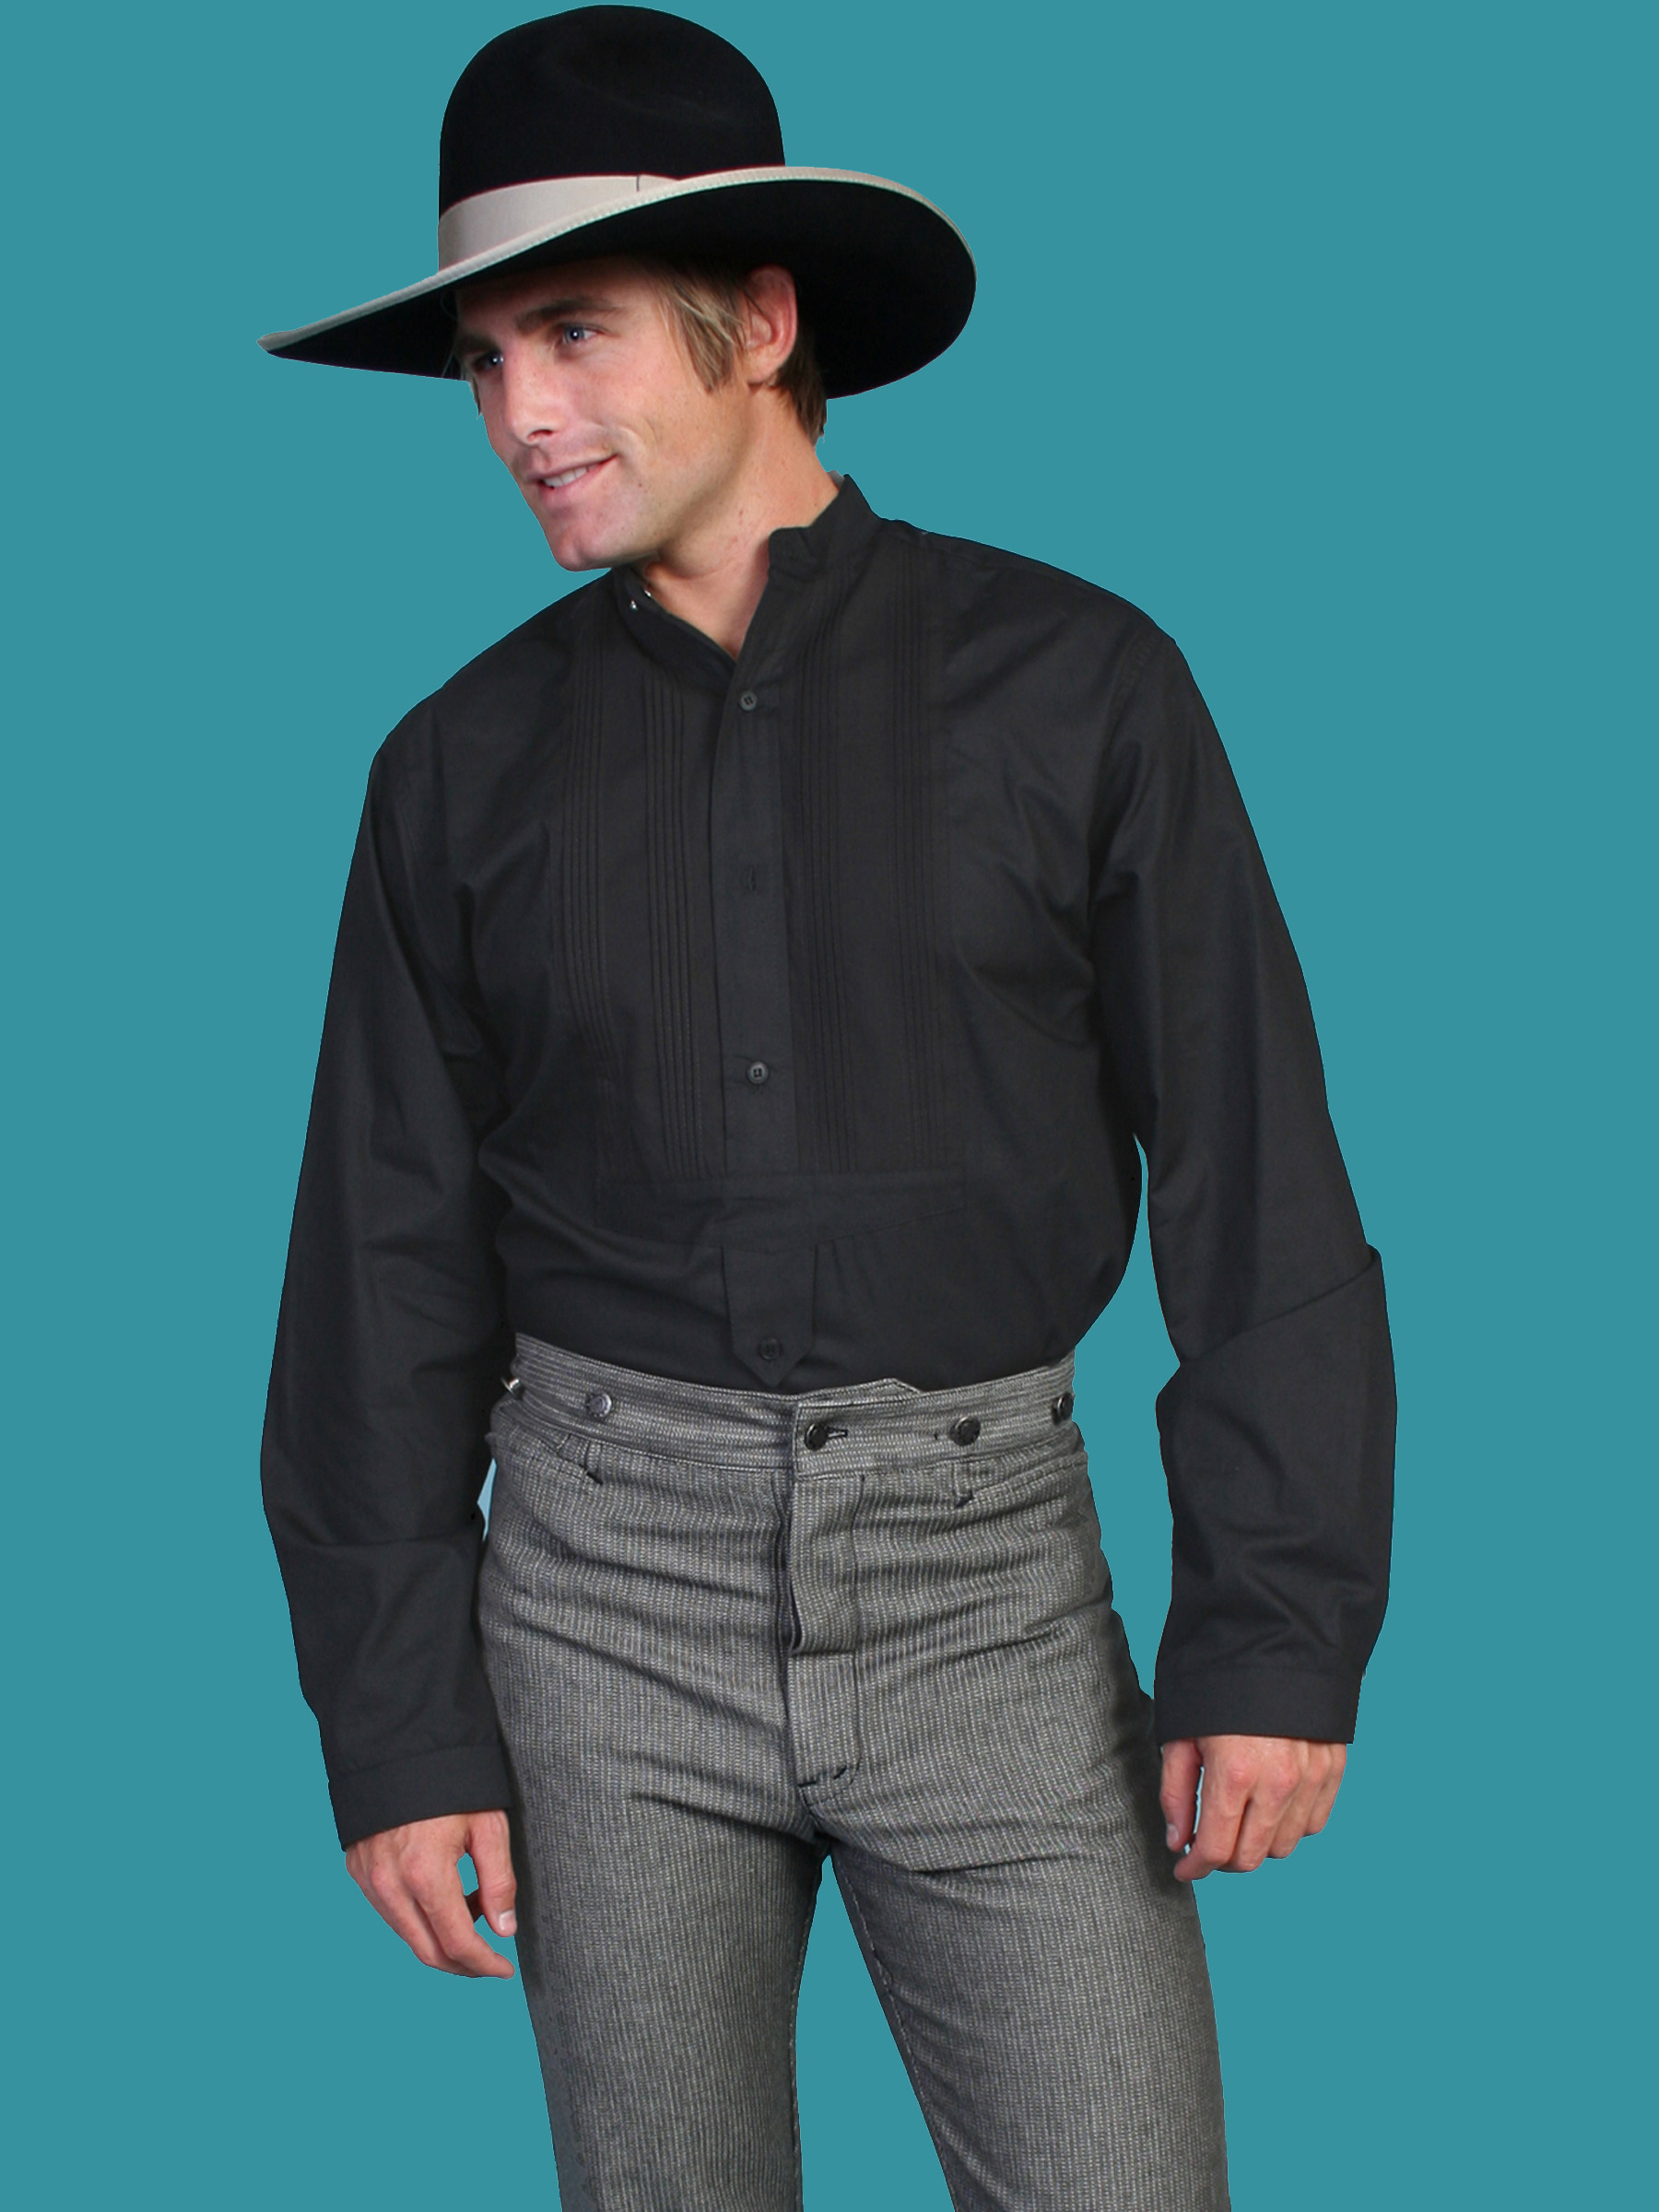 694669ad BIG AND TALL › Rangewear Men's Victorian TUXEDO FRONT SHIRT- BLACK. SCULLY  RW032 BLACK. CLICK or HOVER to ENLARGE